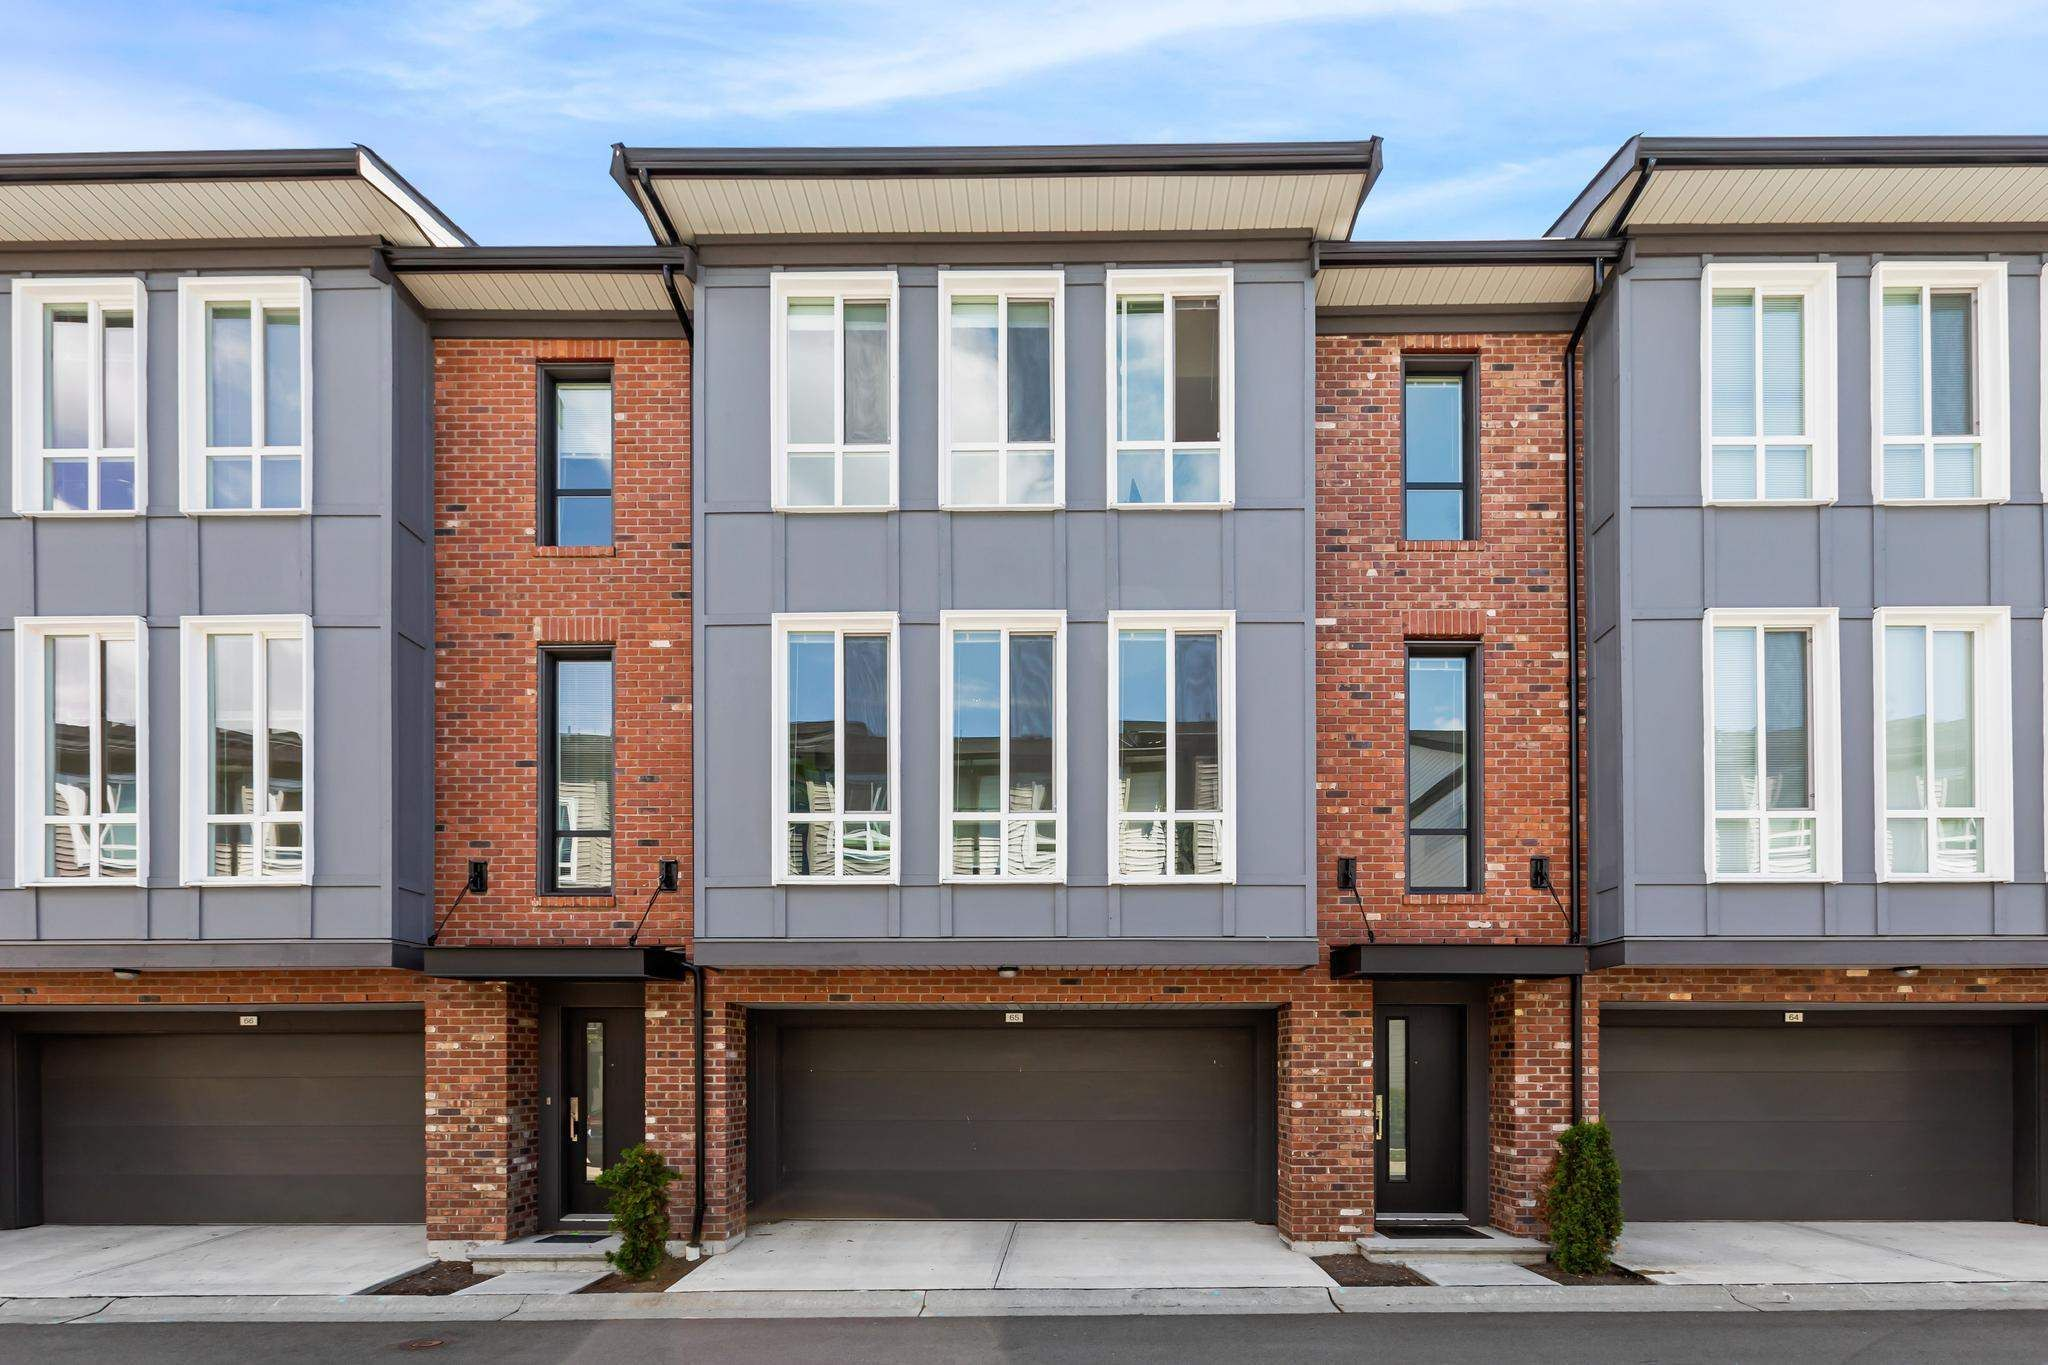 """Main Photo: 65 15828 27 Avenue in Surrey: Grandview Surrey Townhouse for sale in """"Kitchner II"""" (South Surrey White Rock)  : MLS®# R2594481"""